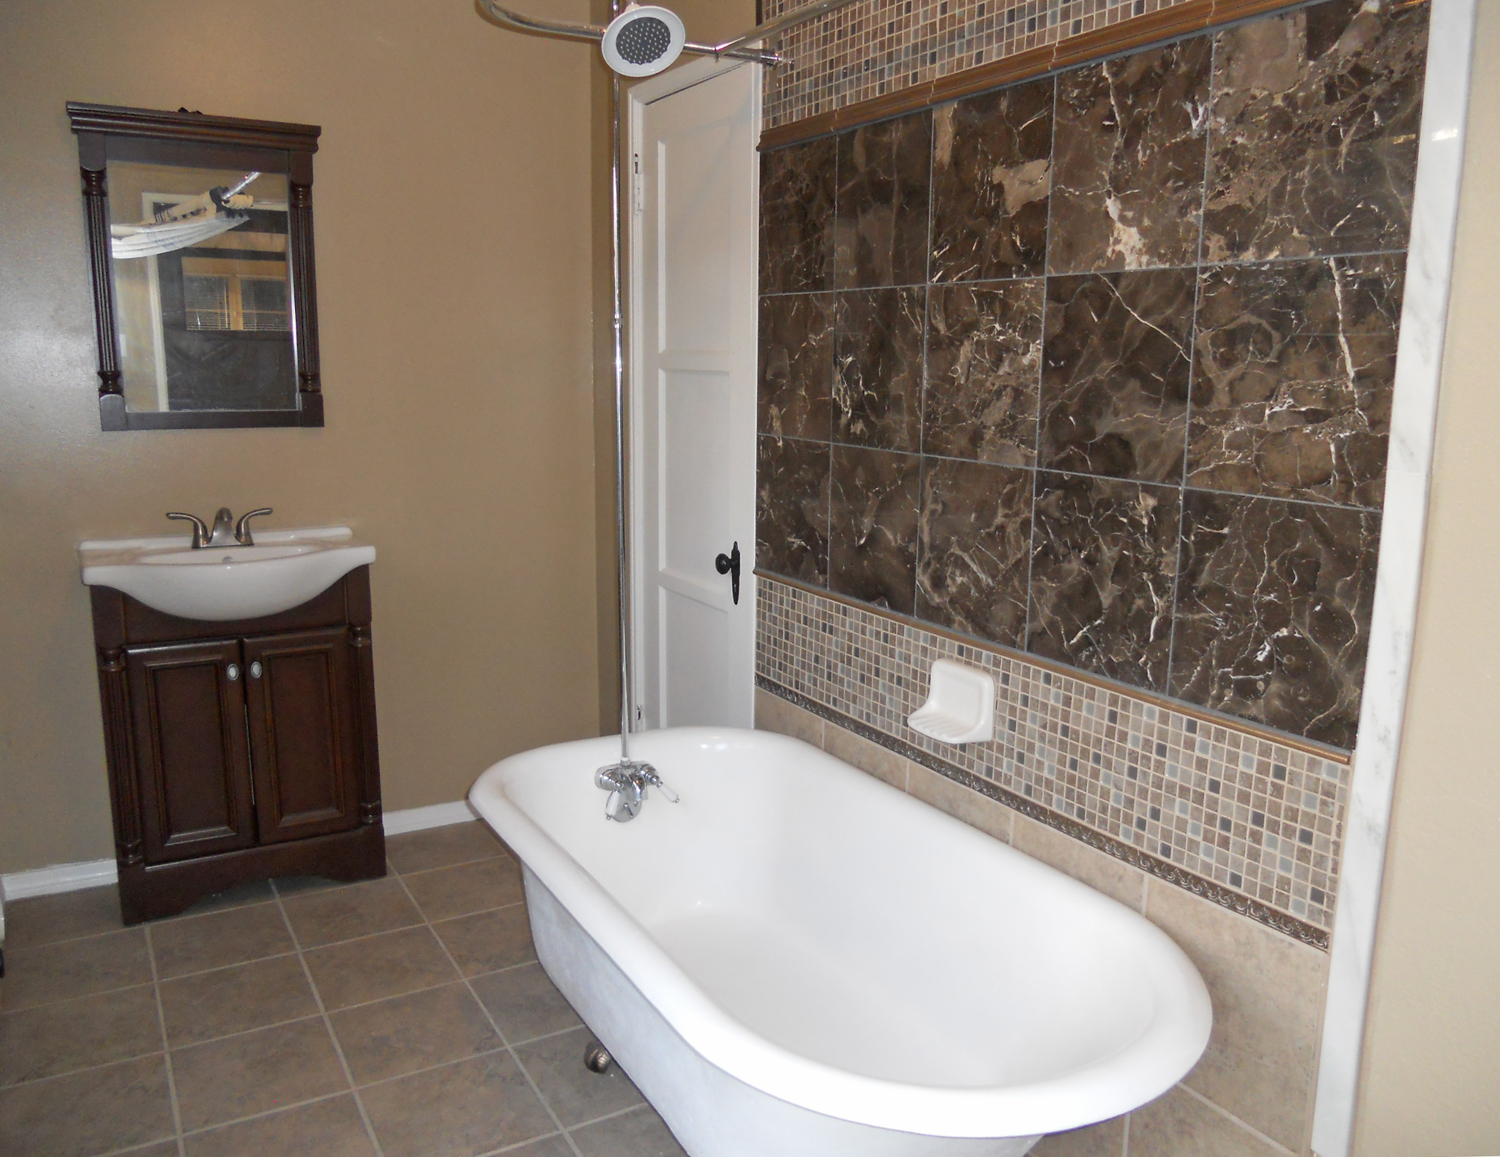 Fresh Second remodeled bathroom with clawfoot tub new vanity and tile floor and backsplash